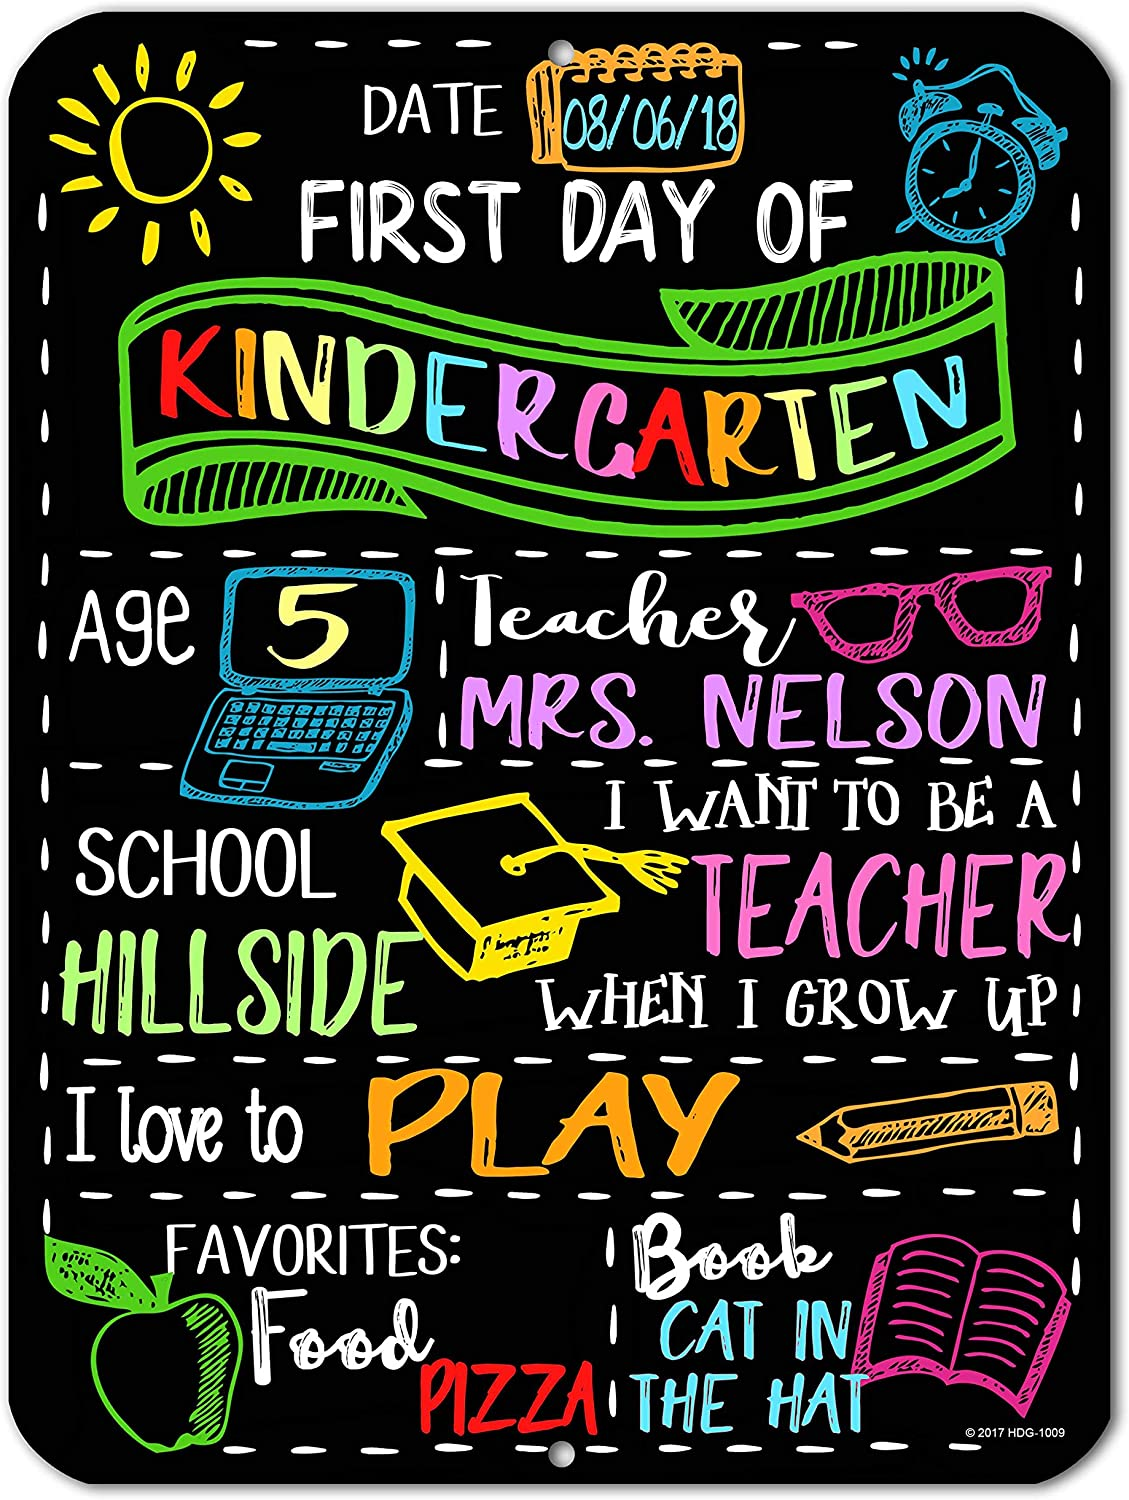 Chalkboard Style First Day of School Photo Prop Tin 9 inch by 12 inch Sign - Reusable Easy Clean Back to School - Customizable with LIQUID CHALK MARKERS (Not Included)